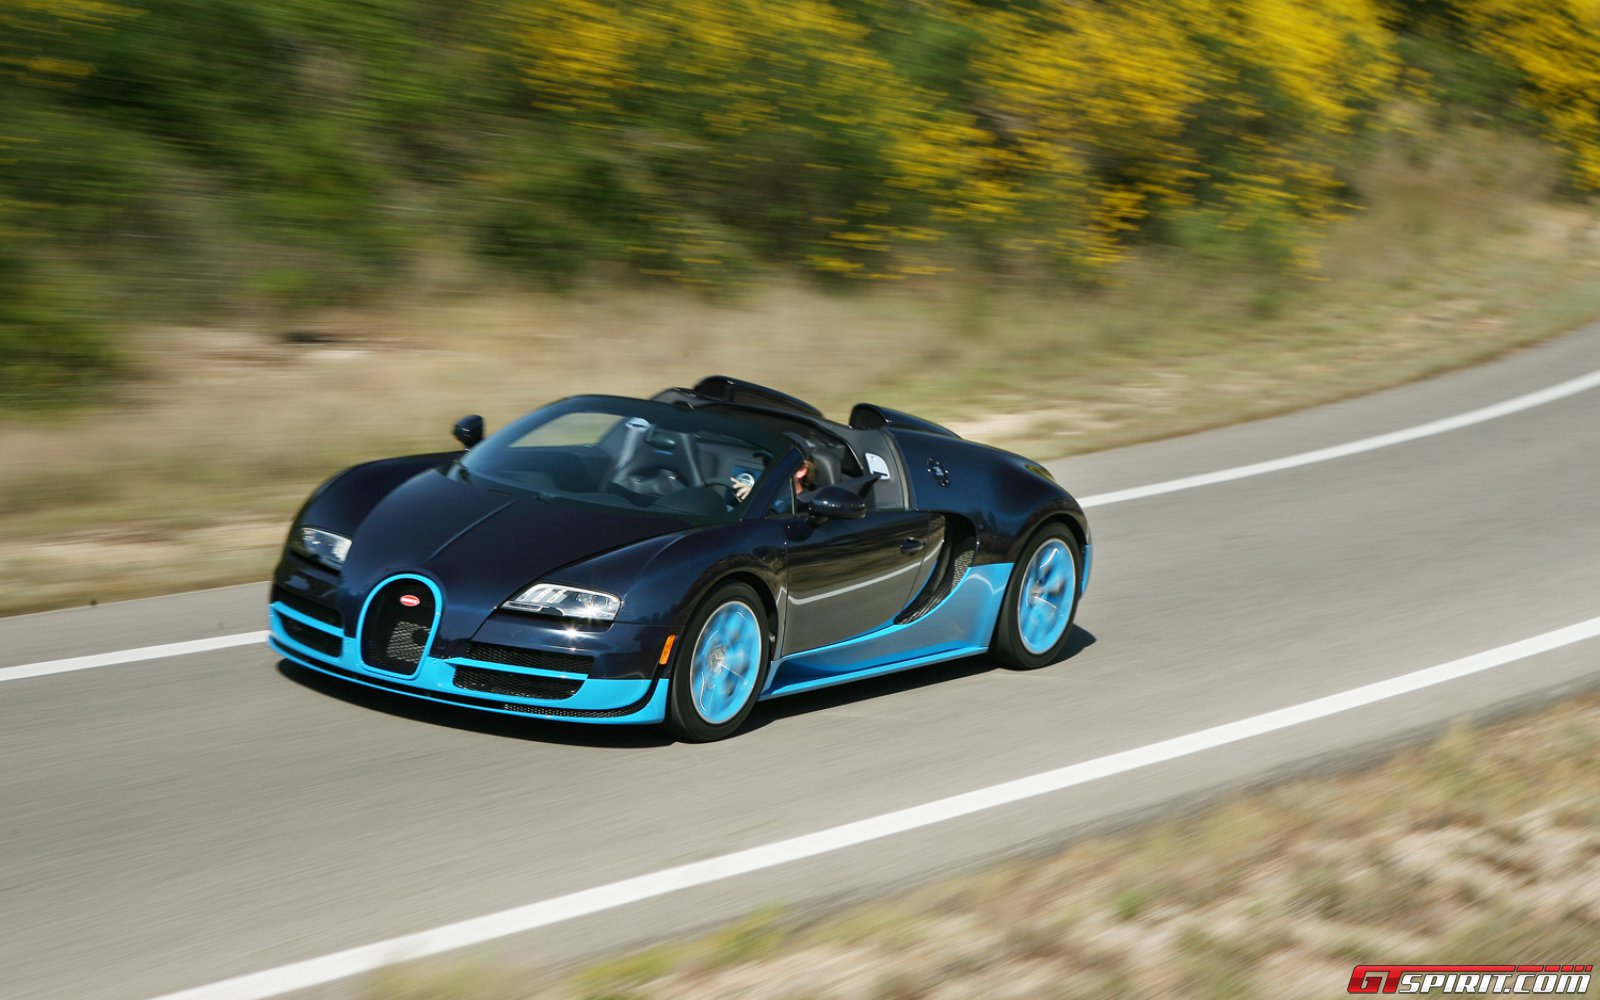 final bugatti veyron heading to geneva motor show 2015 gtspirit. Black Bedroom Furniture Sets. Home Design Ideas